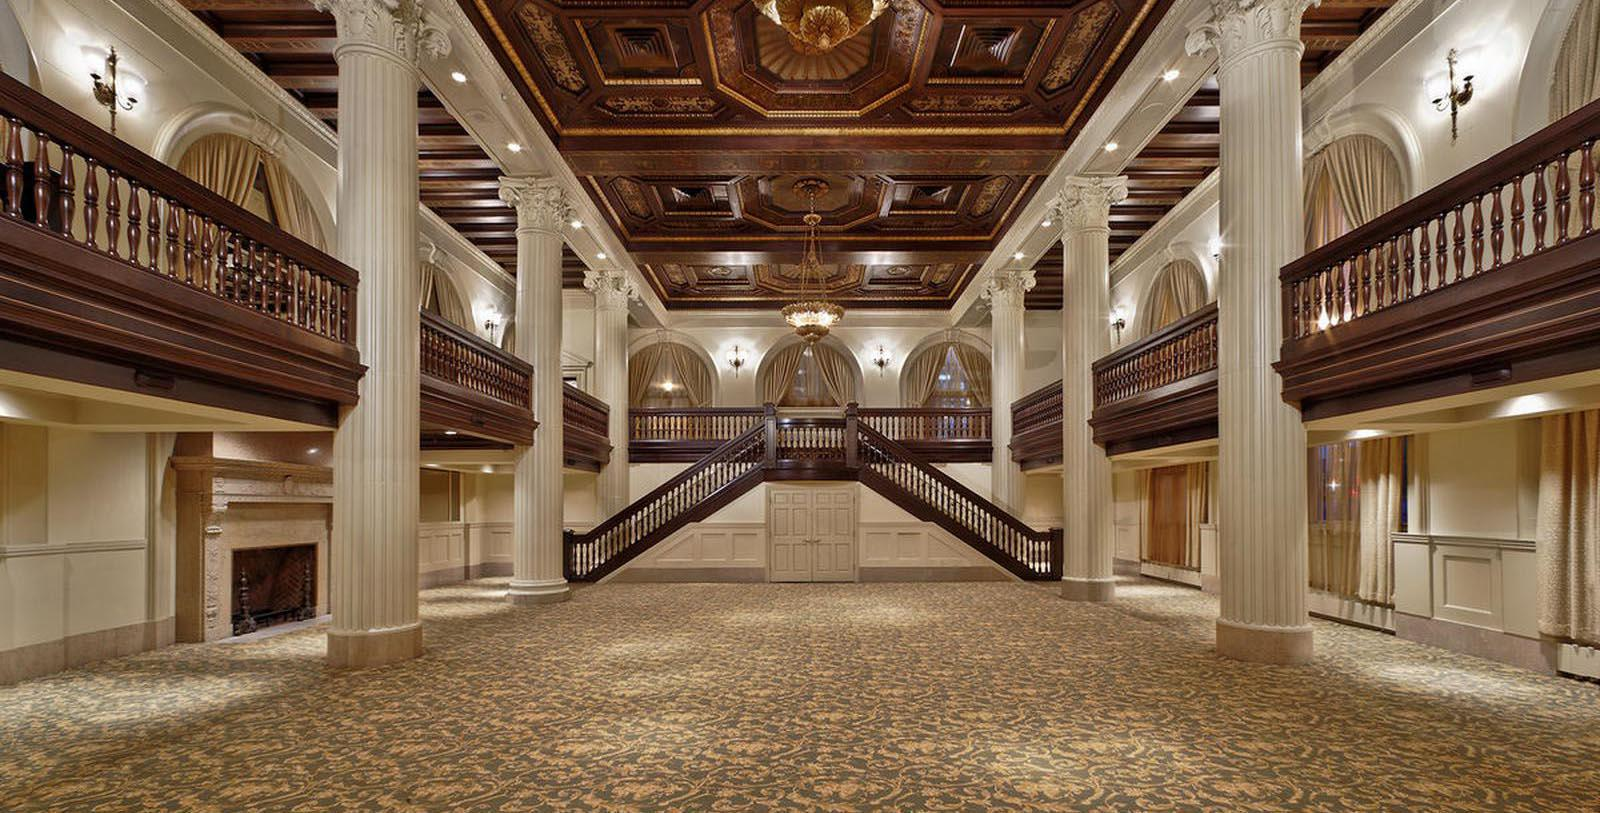 Image of Interior Event Space at Amway Grand Plaza Hotel, 1913, 1913, Member of Historic Hotels of America, in Grand Rapids, Michigan, Experience